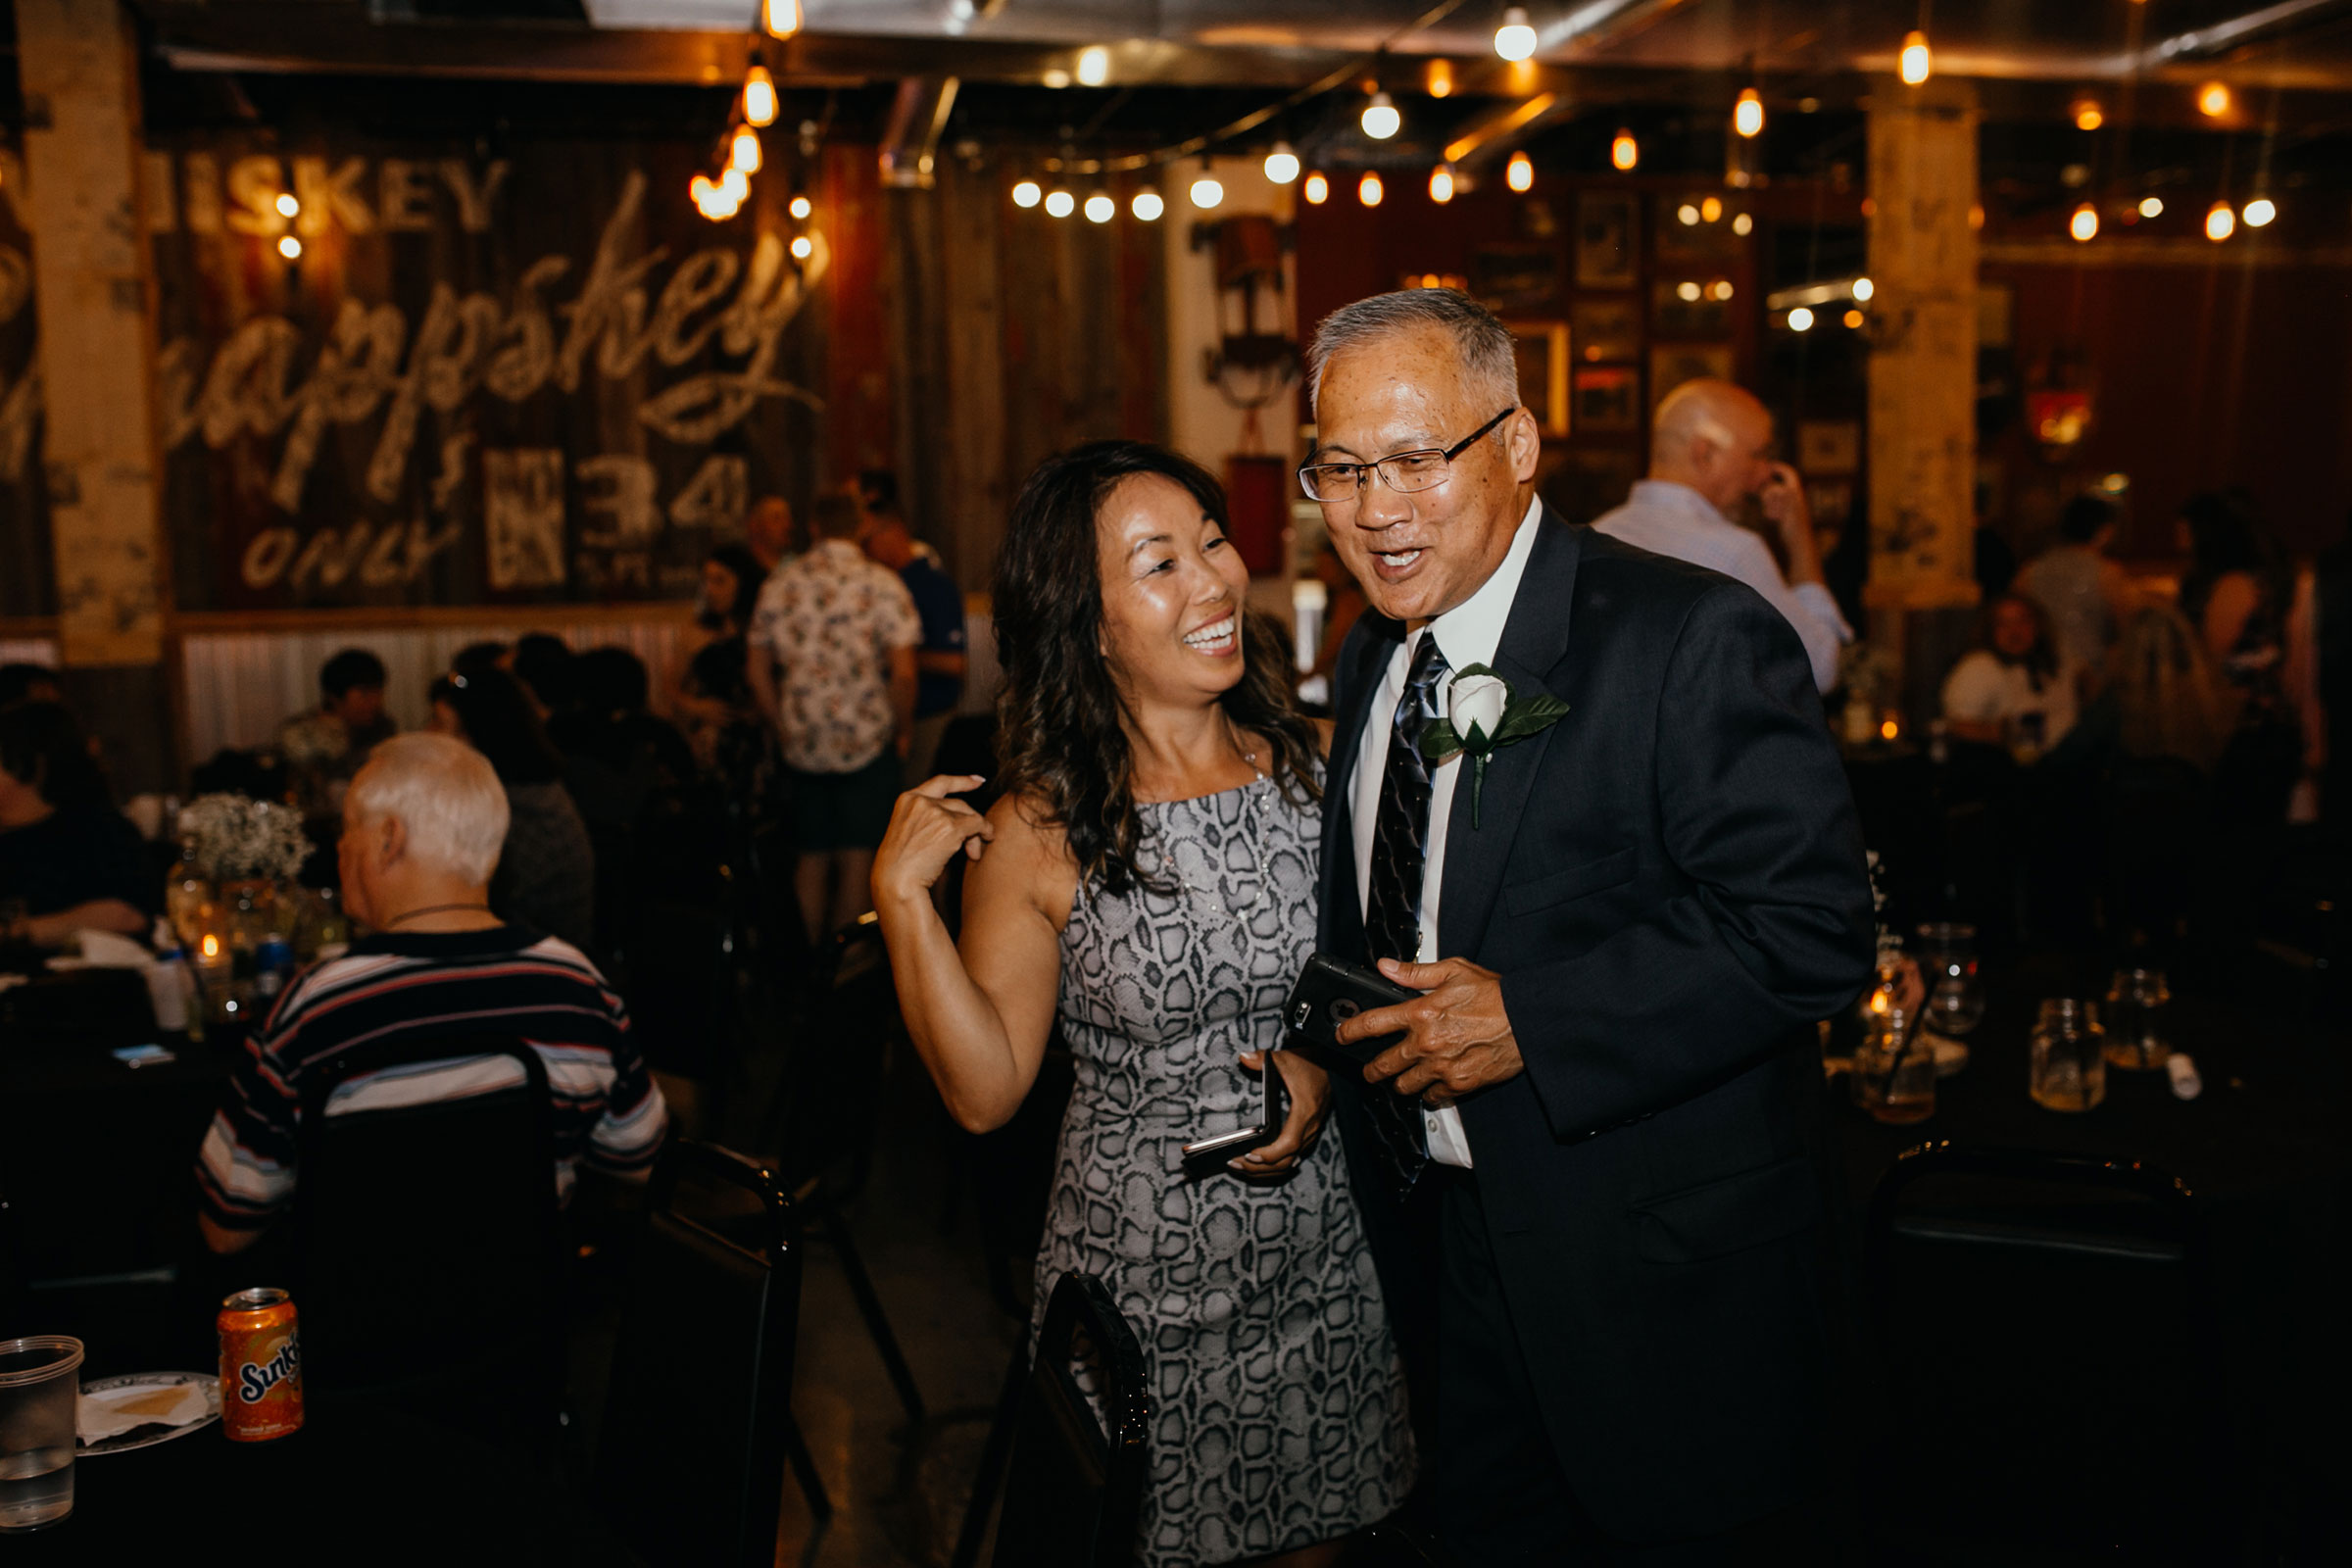 guests-laughing--at-reception-decades-event-center-building-desmoines-iowa-raelyn-ramey-photography..jpg